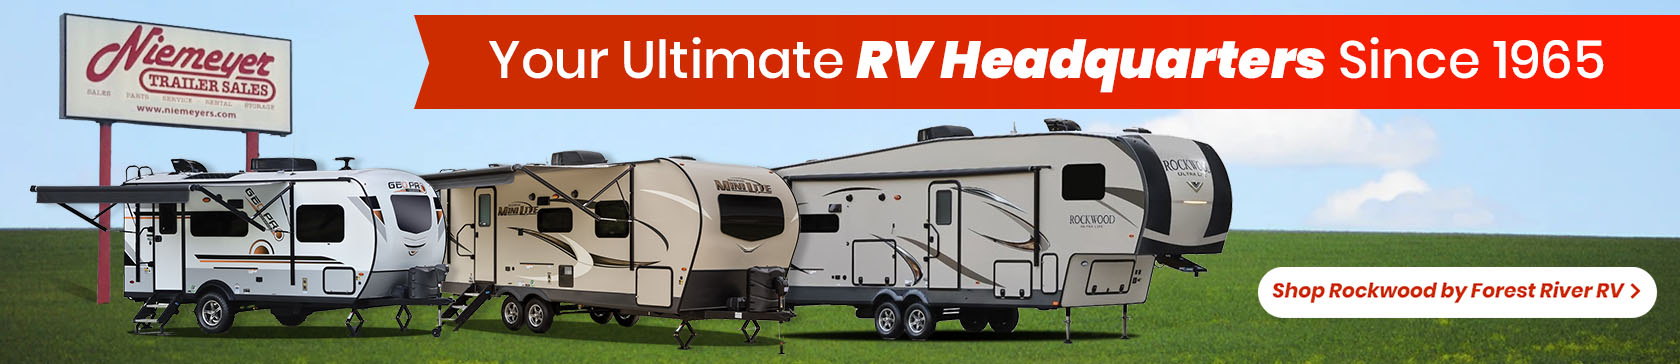 Your Ultimate RV Headquarters Since 1965